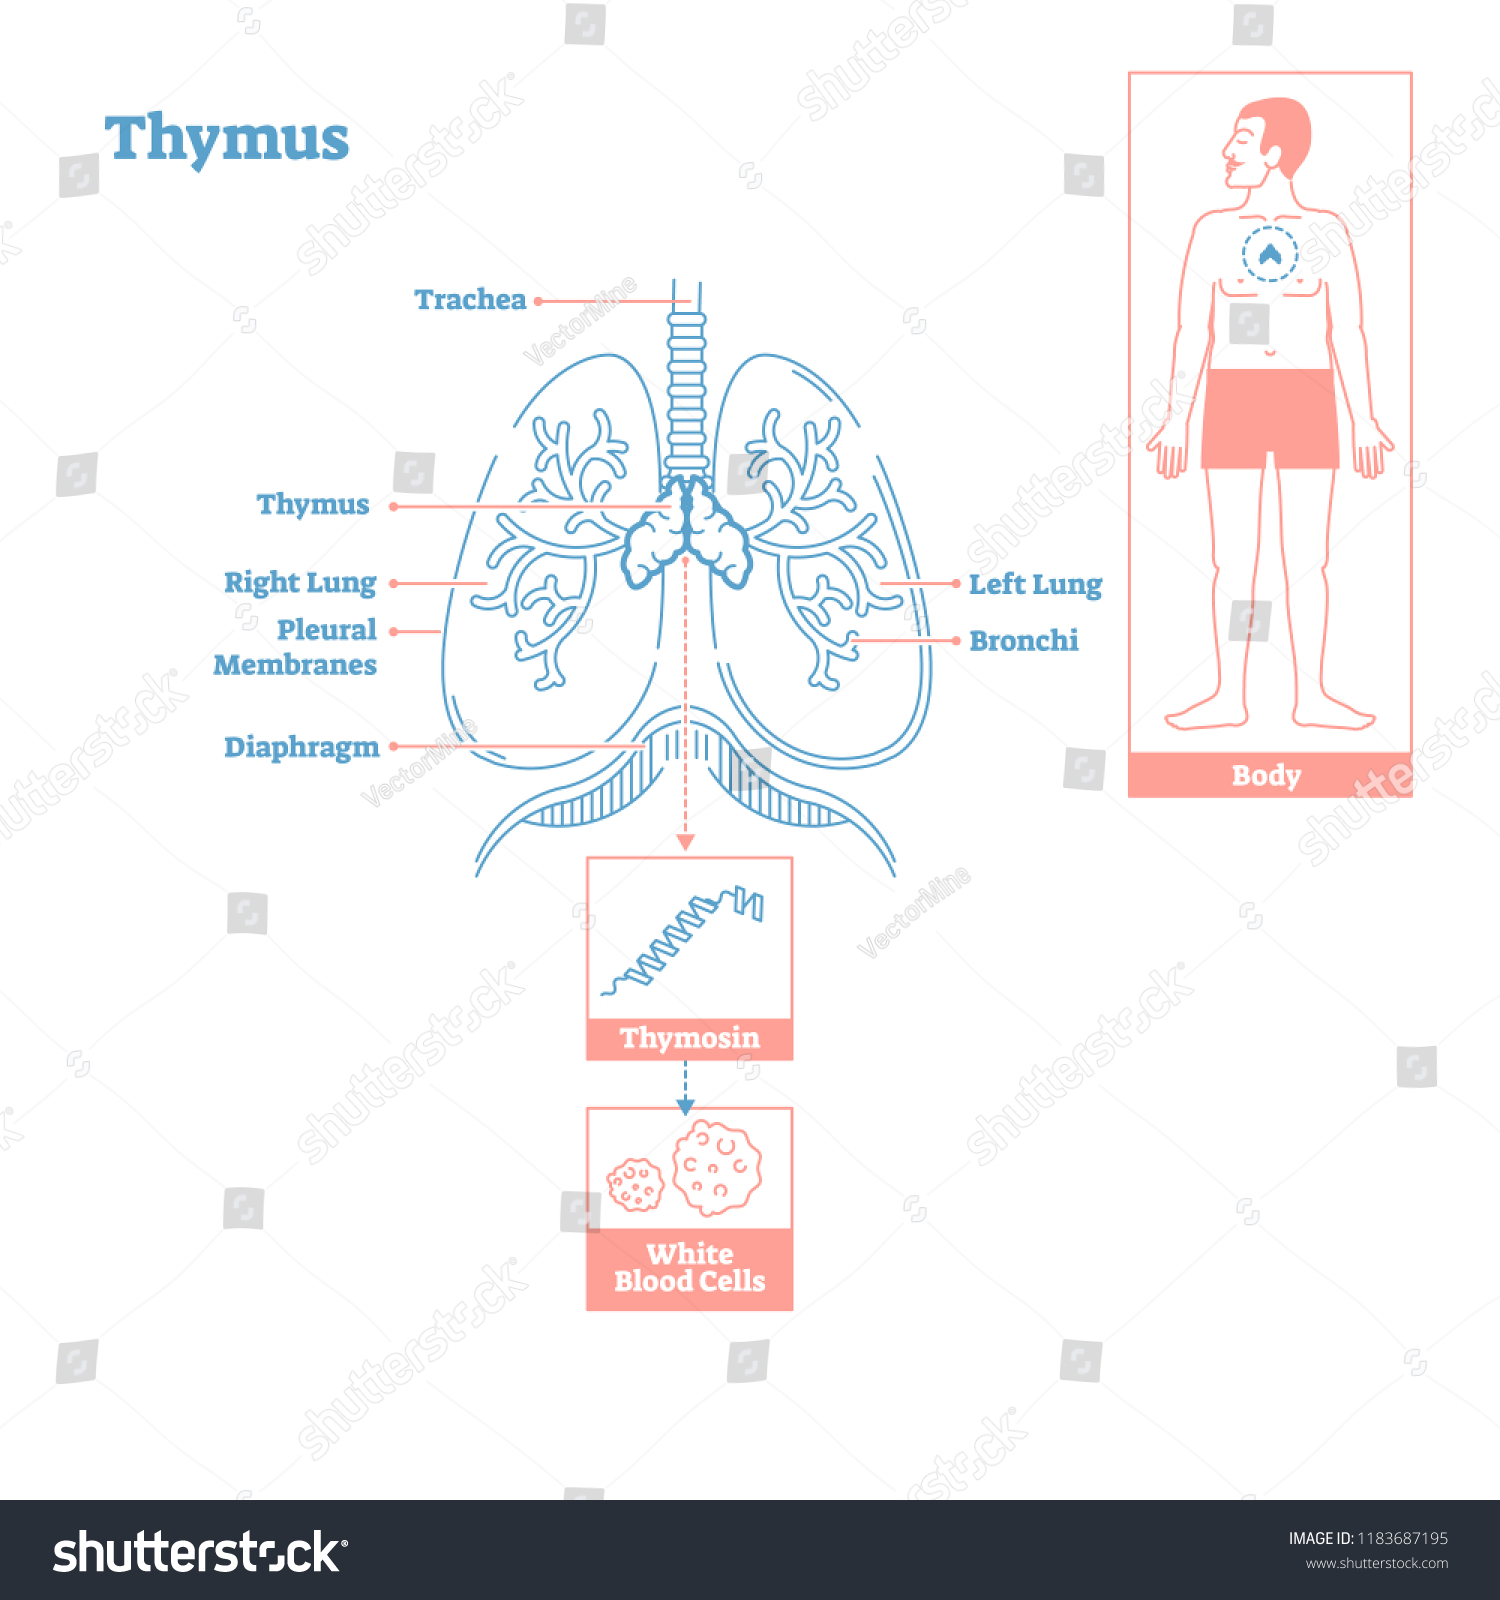 Thymus Gland Endocrine System Medical Science Vector Stock Vector